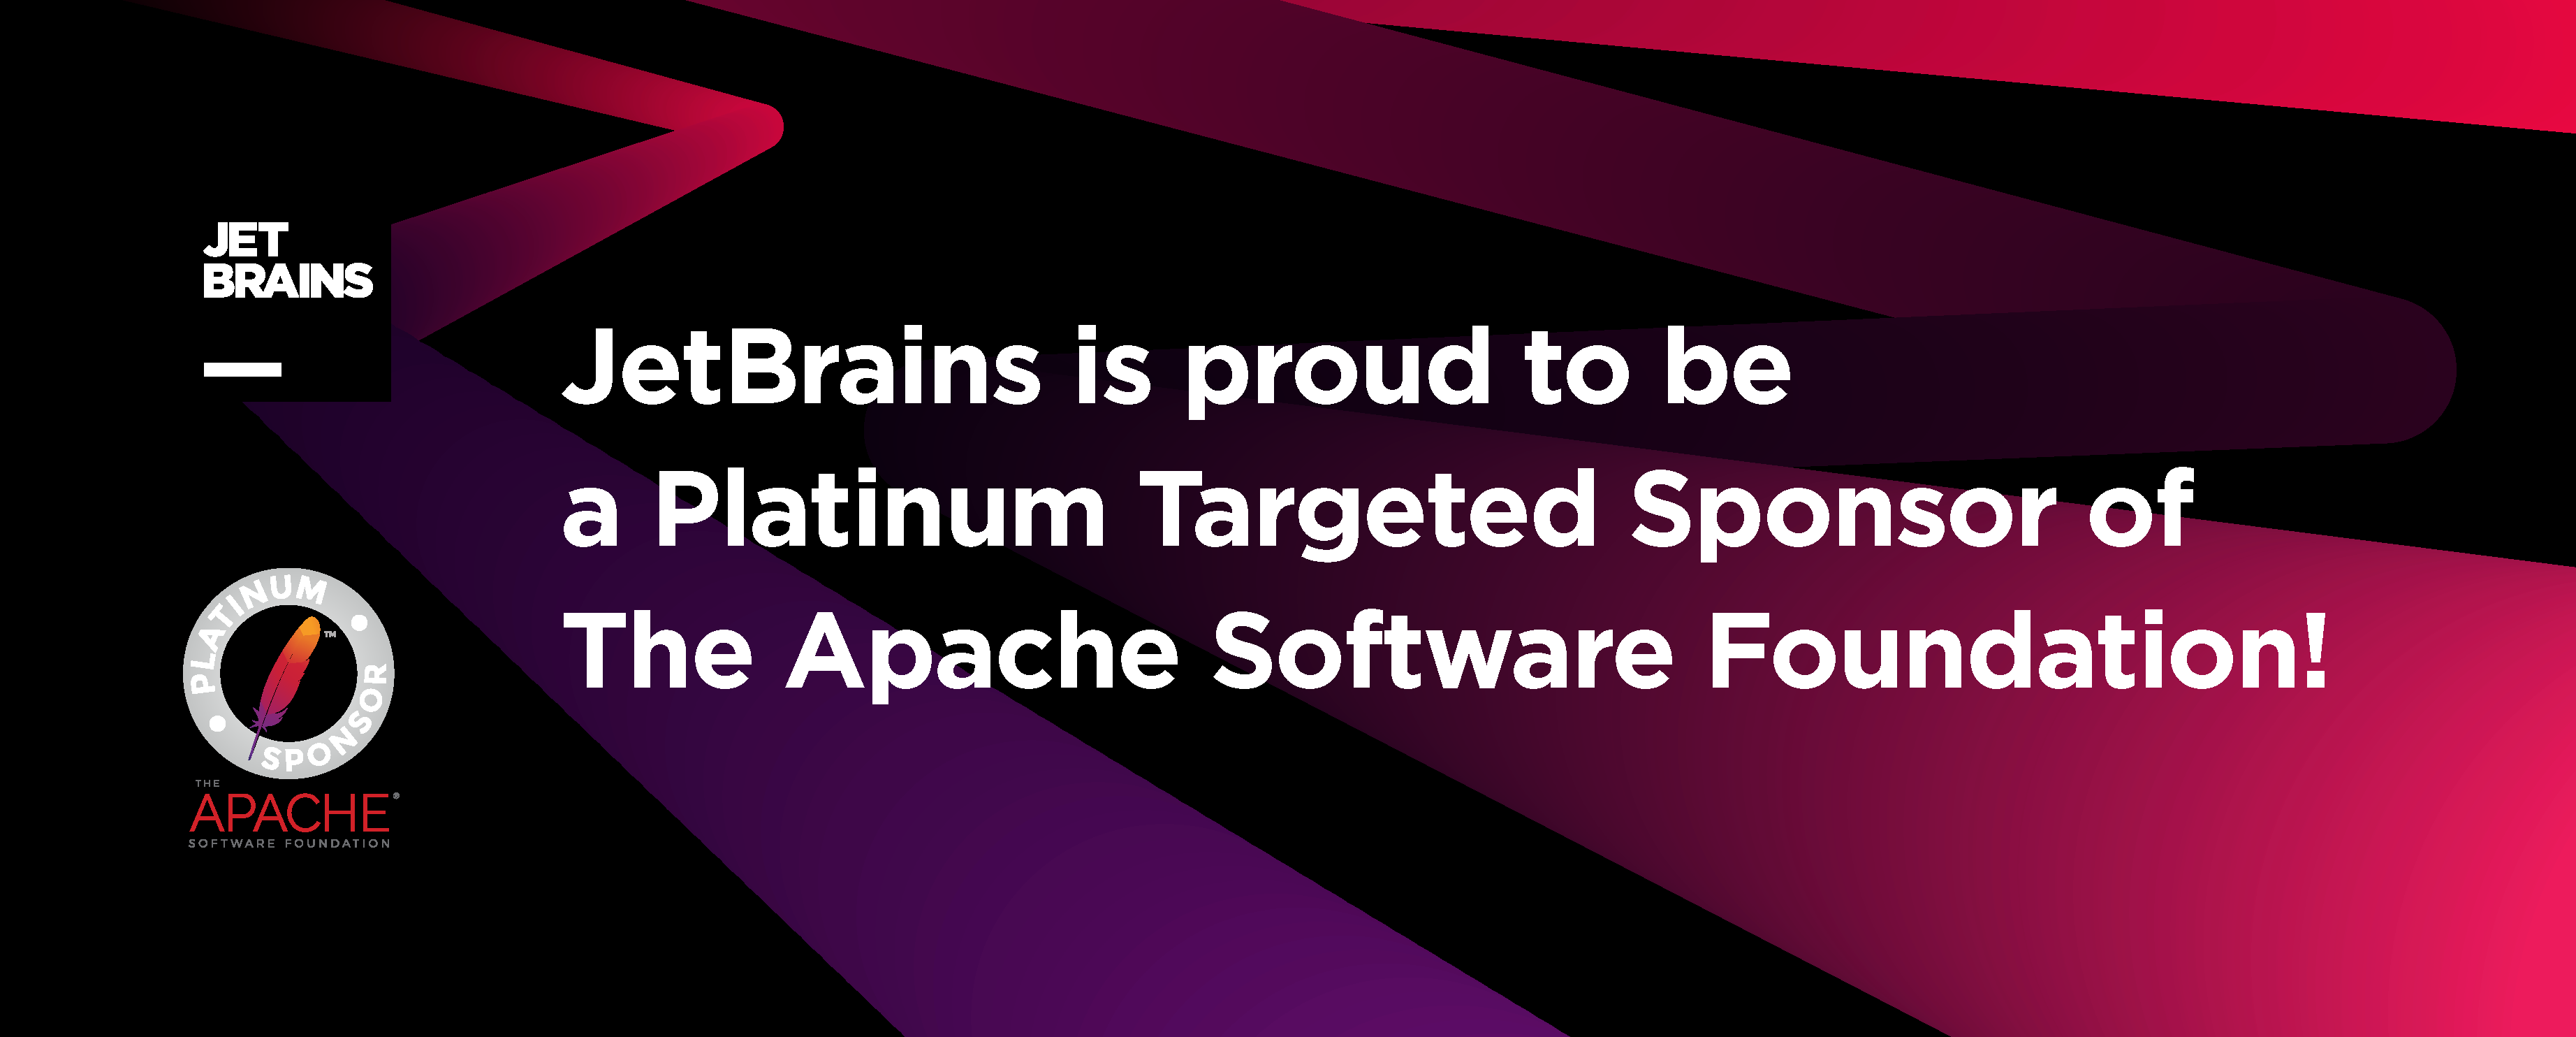 JetBrains Supports The Apache Software Foundation